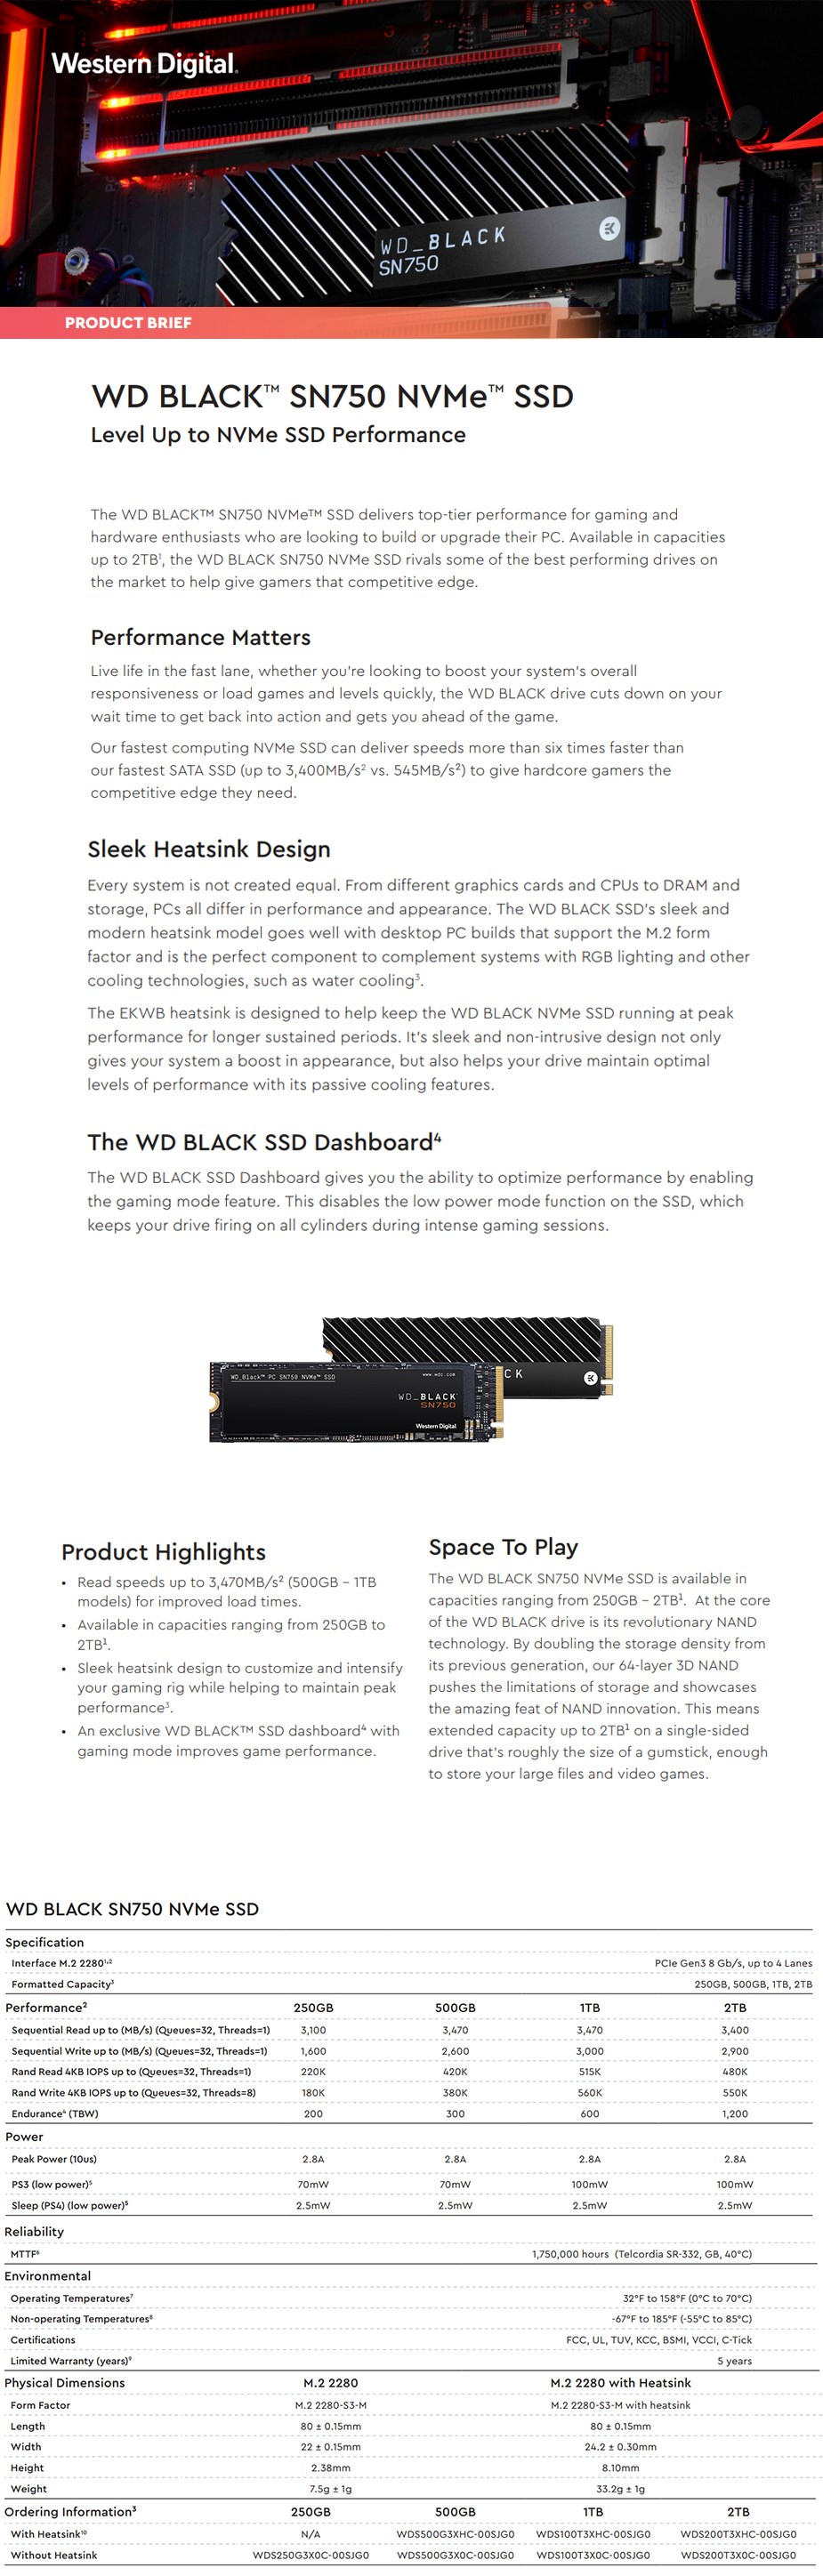 A large marketing image providing additional information about the product WD Black SN750 1TB 3D NAND NVMe M.2 SSD - Additional alt info not provided